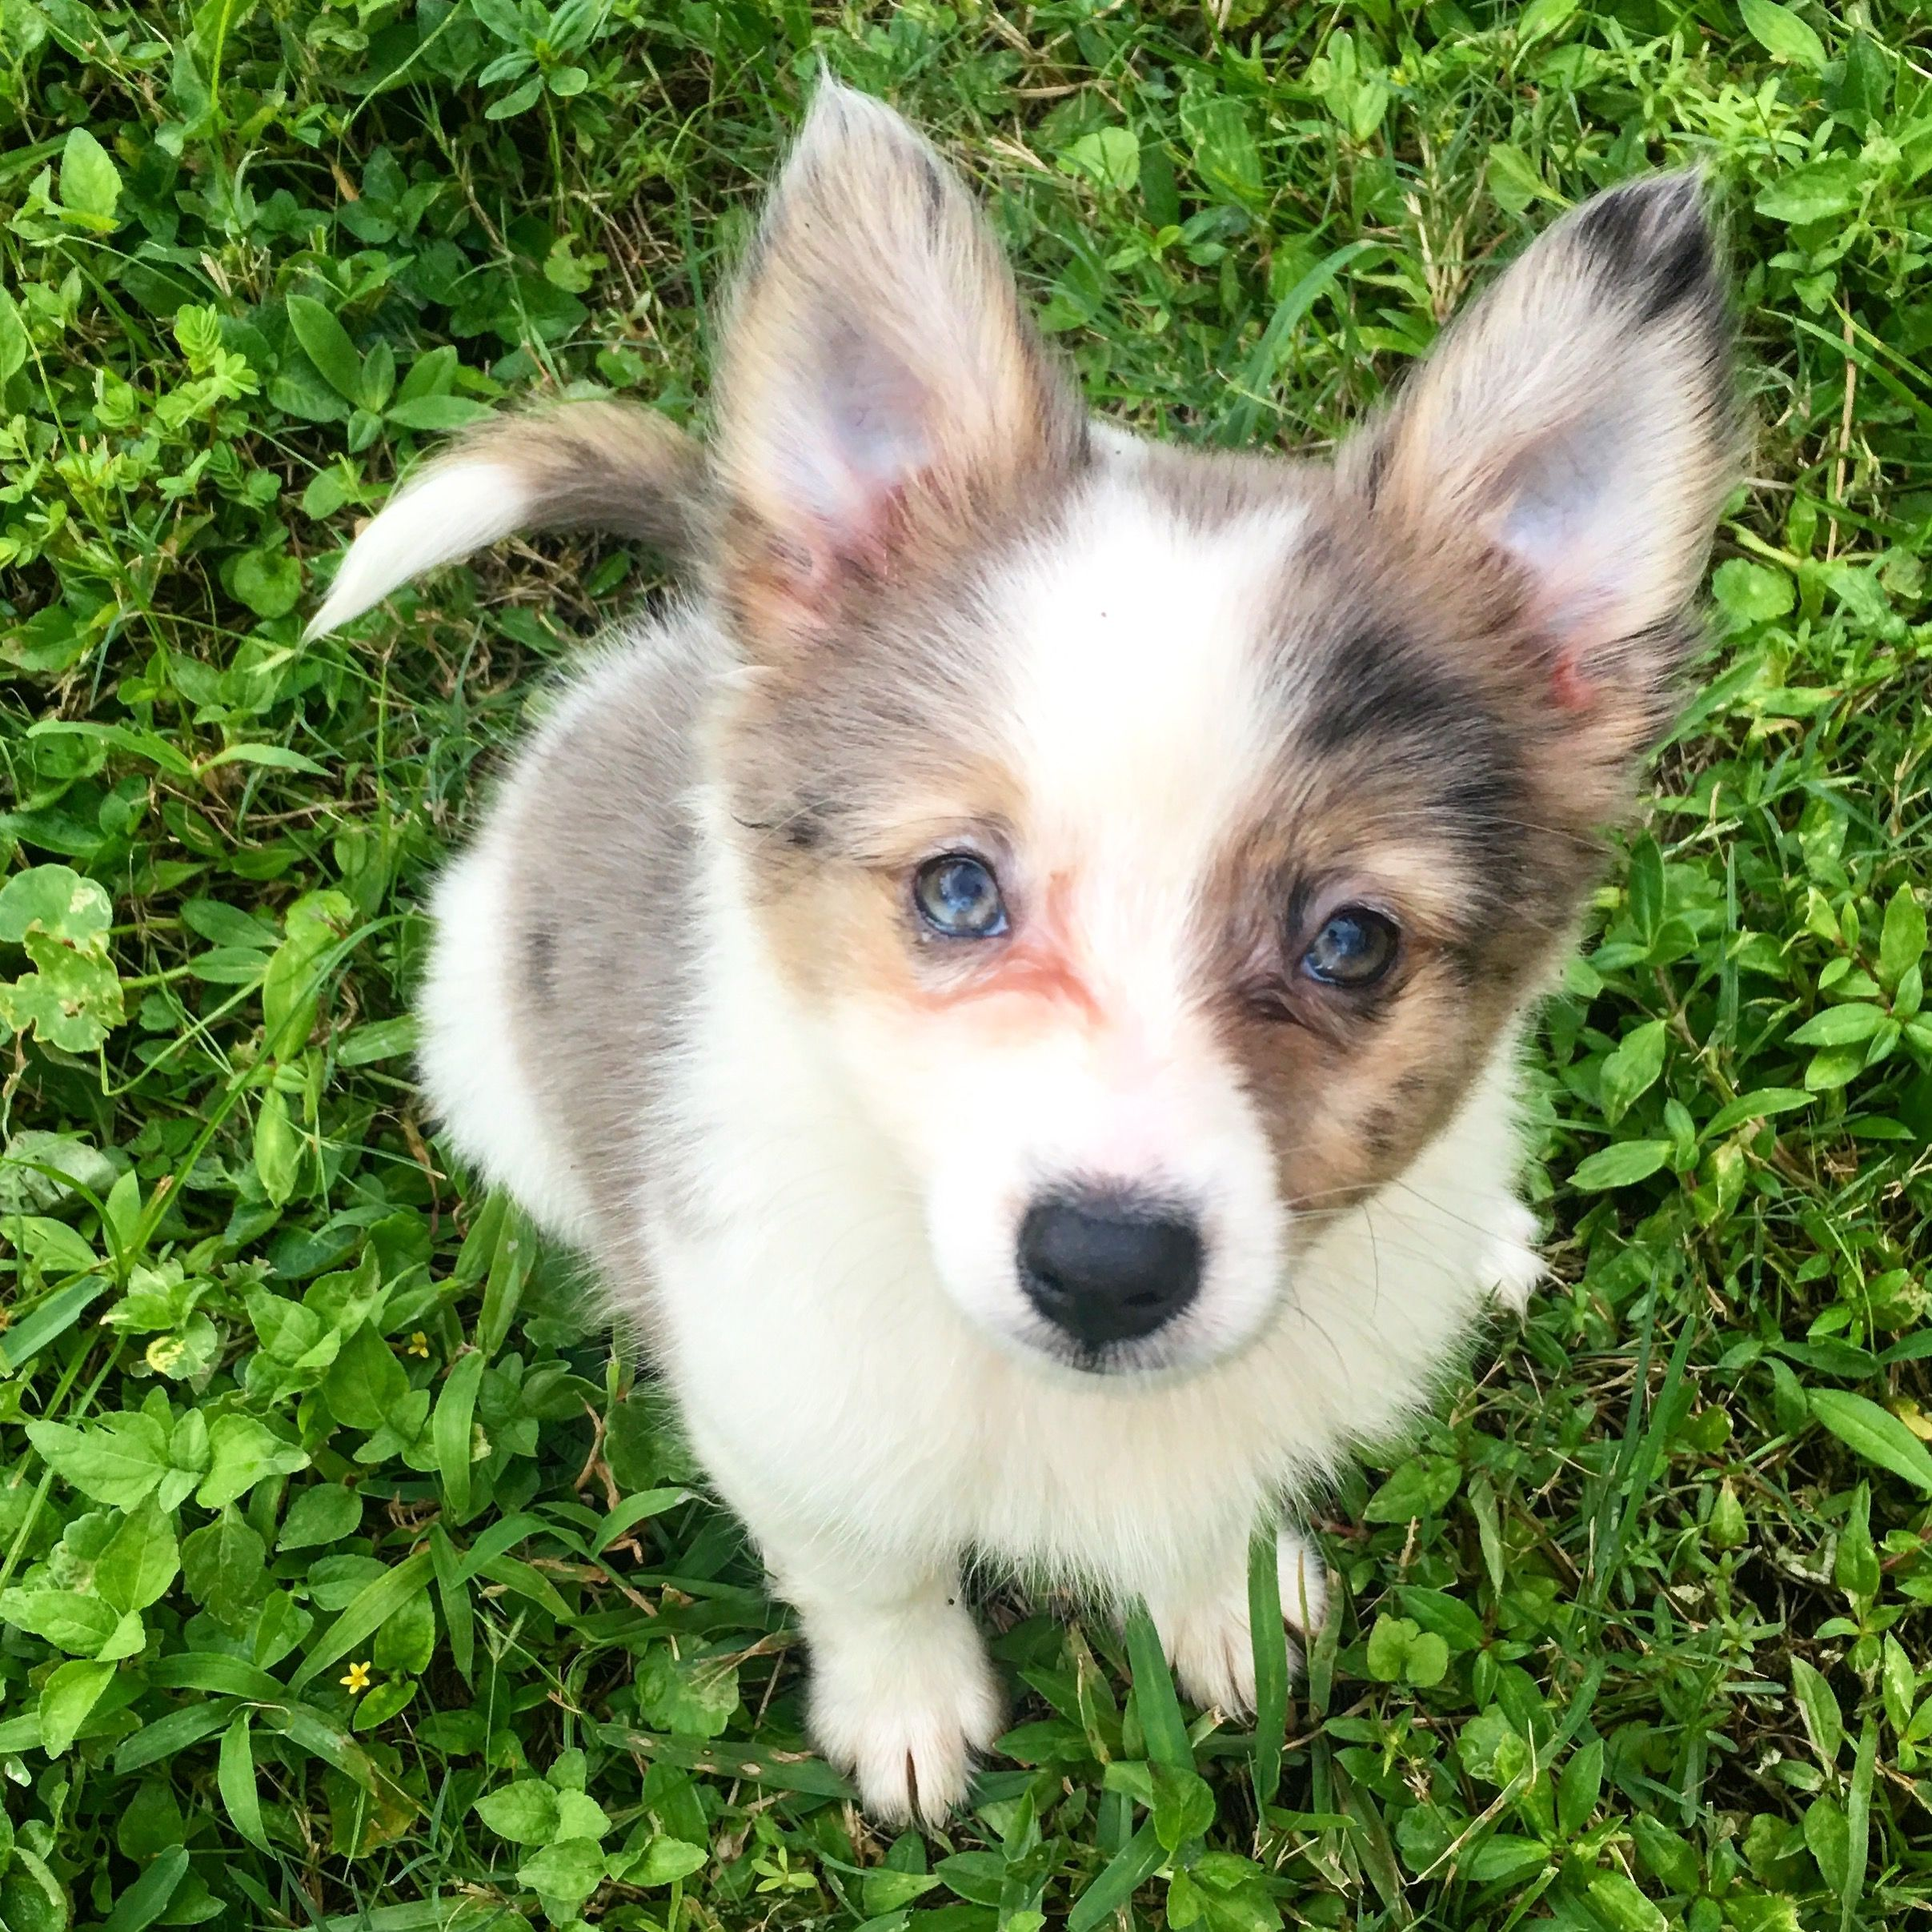 Australian Shepherd Mixed With American Eskimo Puppy American Eskimo Dog American Eskimo Puppy Puppies